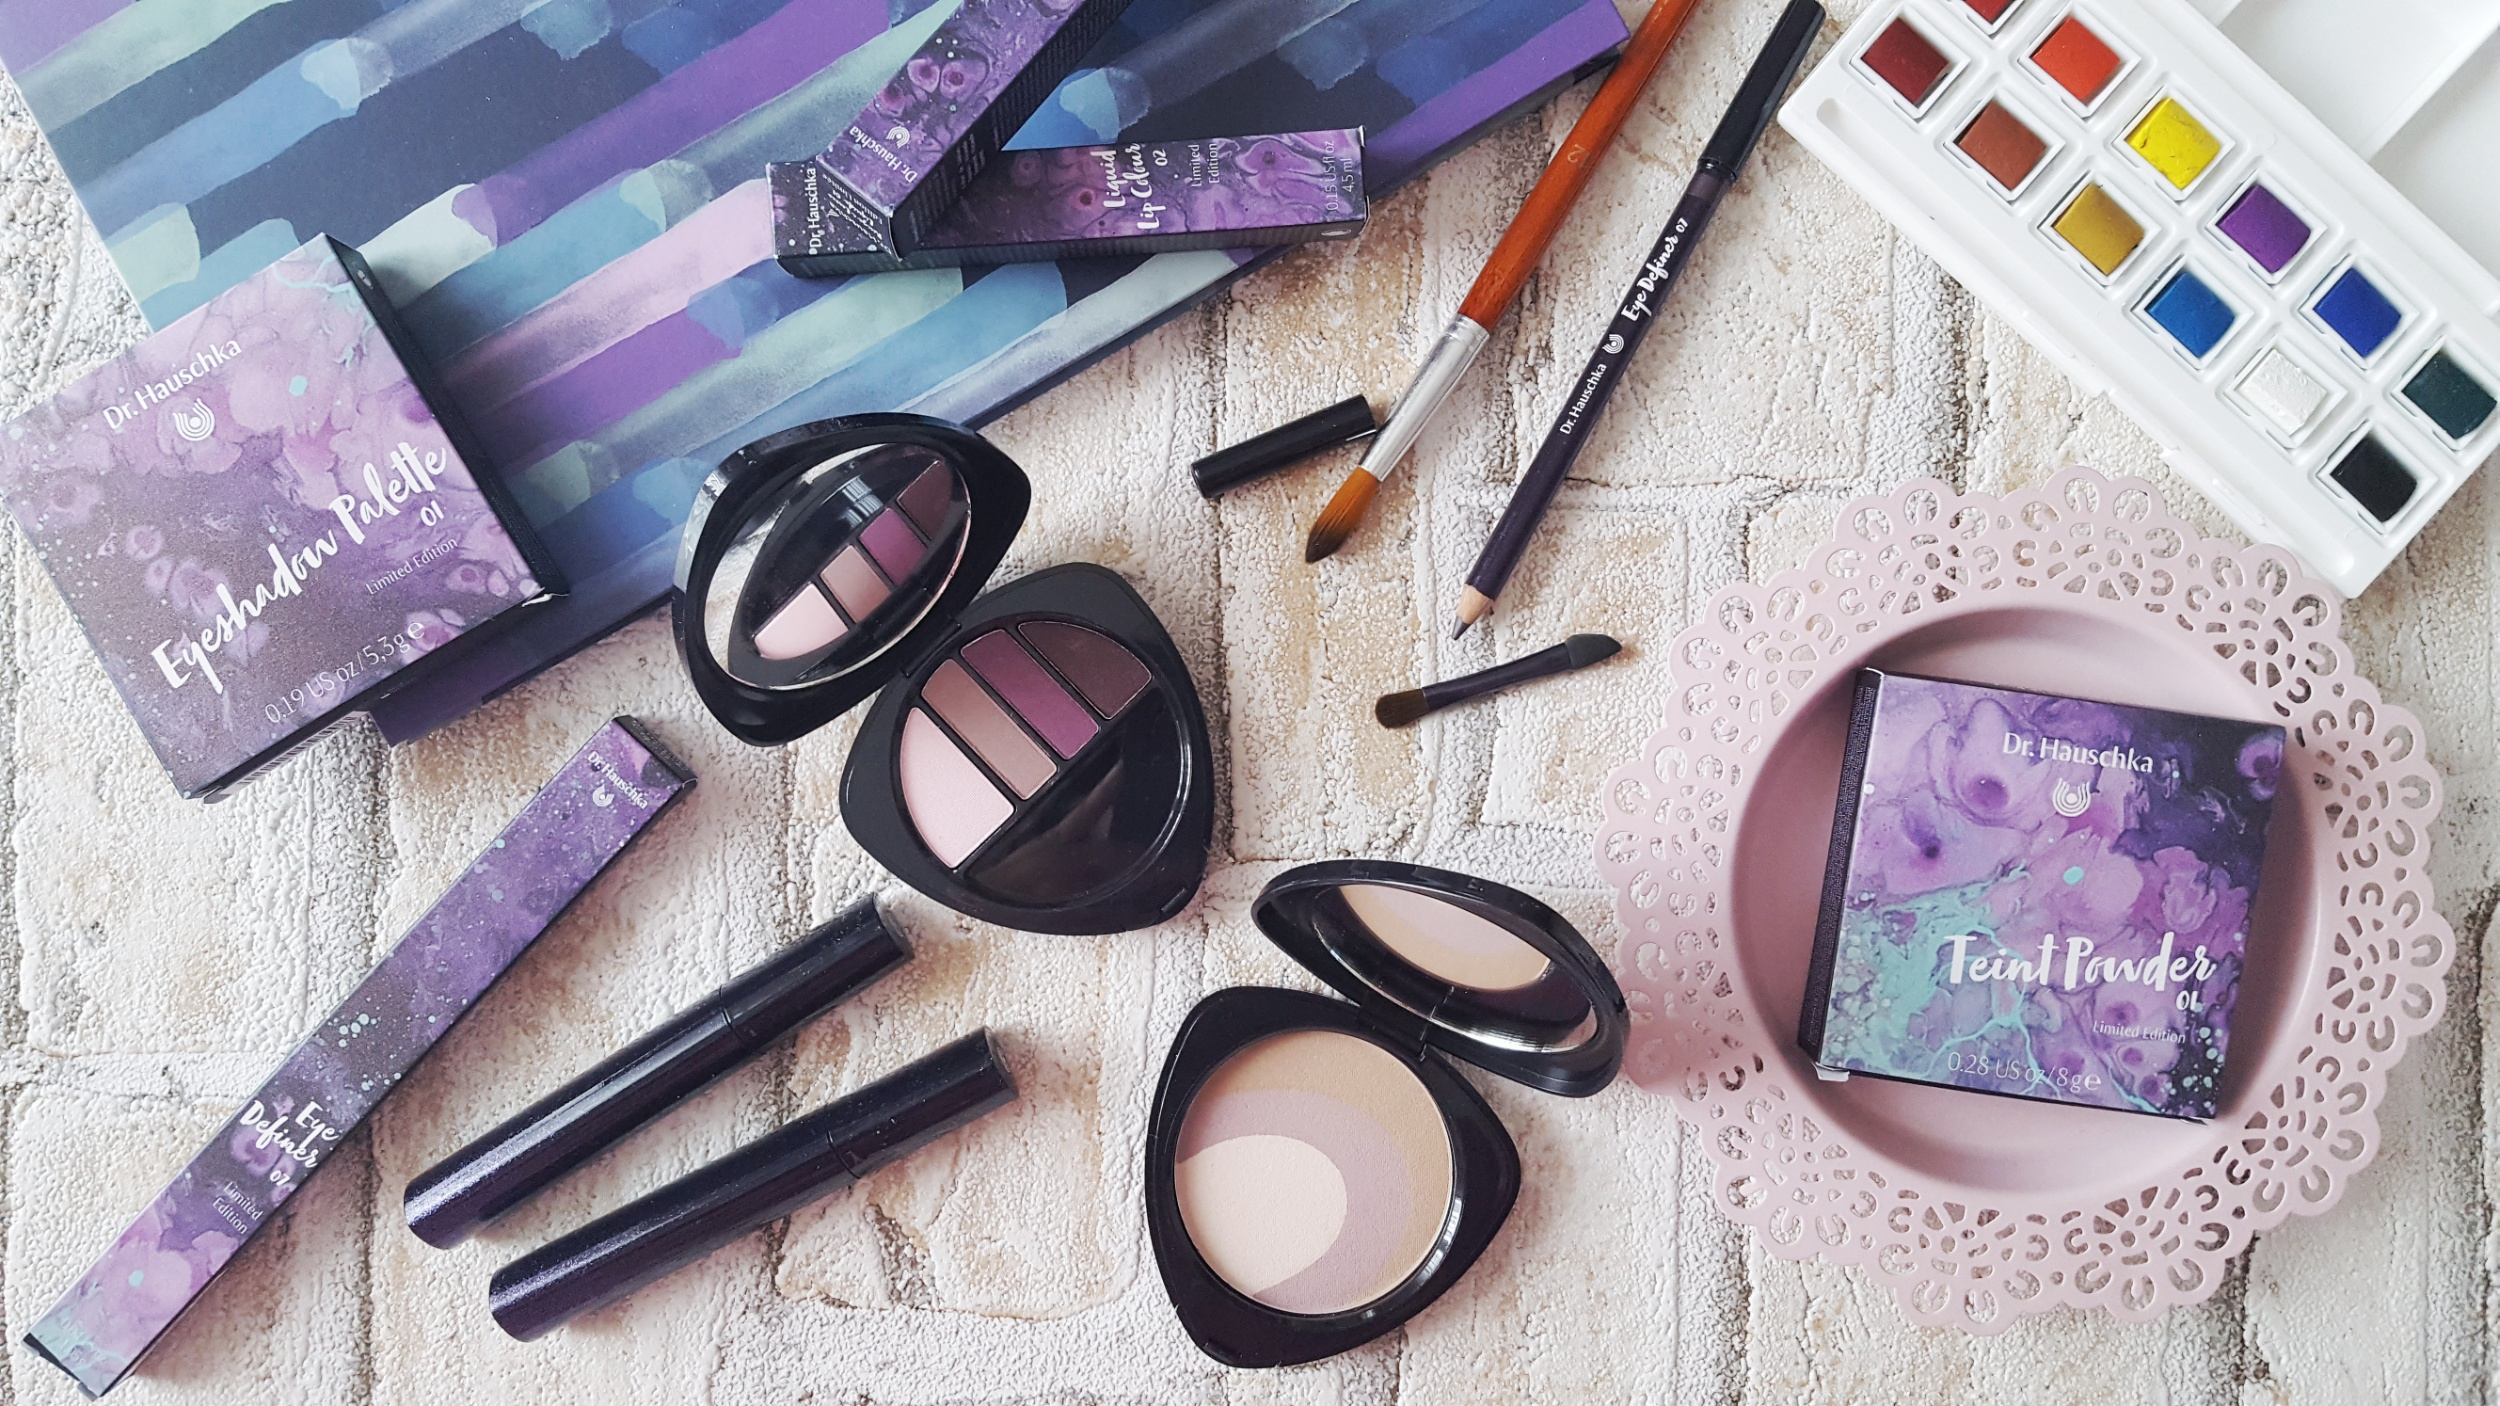 Dr. Hauschka Purple Light Make up Collection